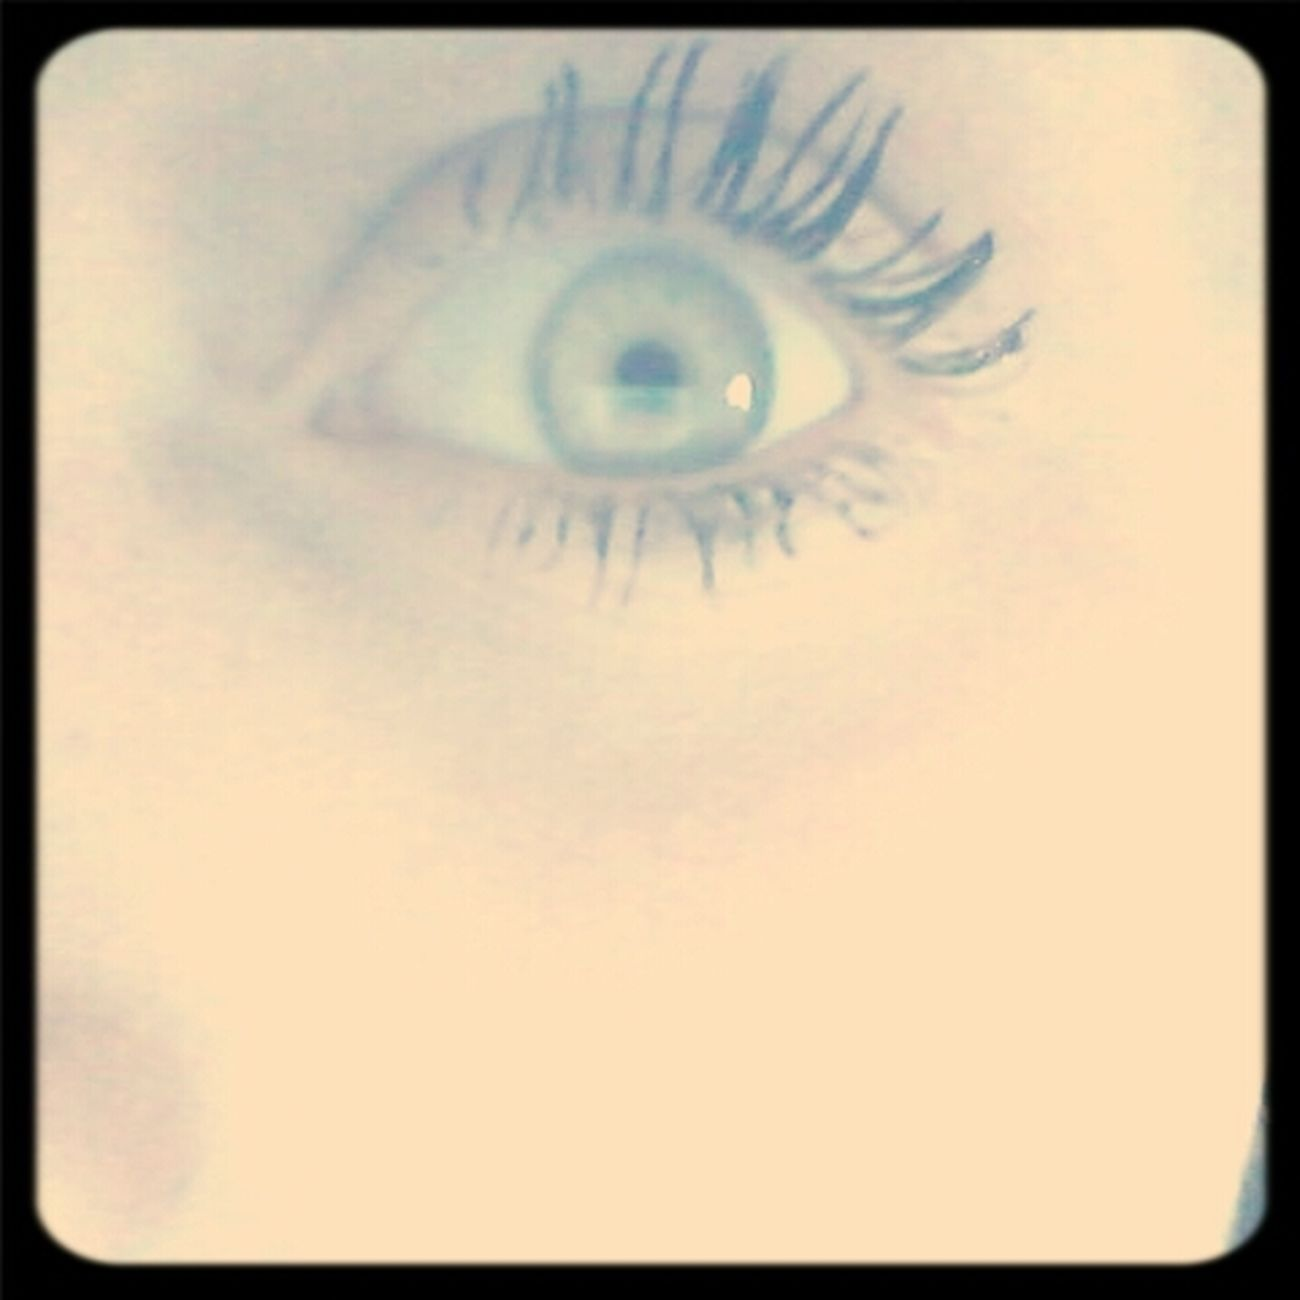 my eye!!!(: its green,,. ♡♥``